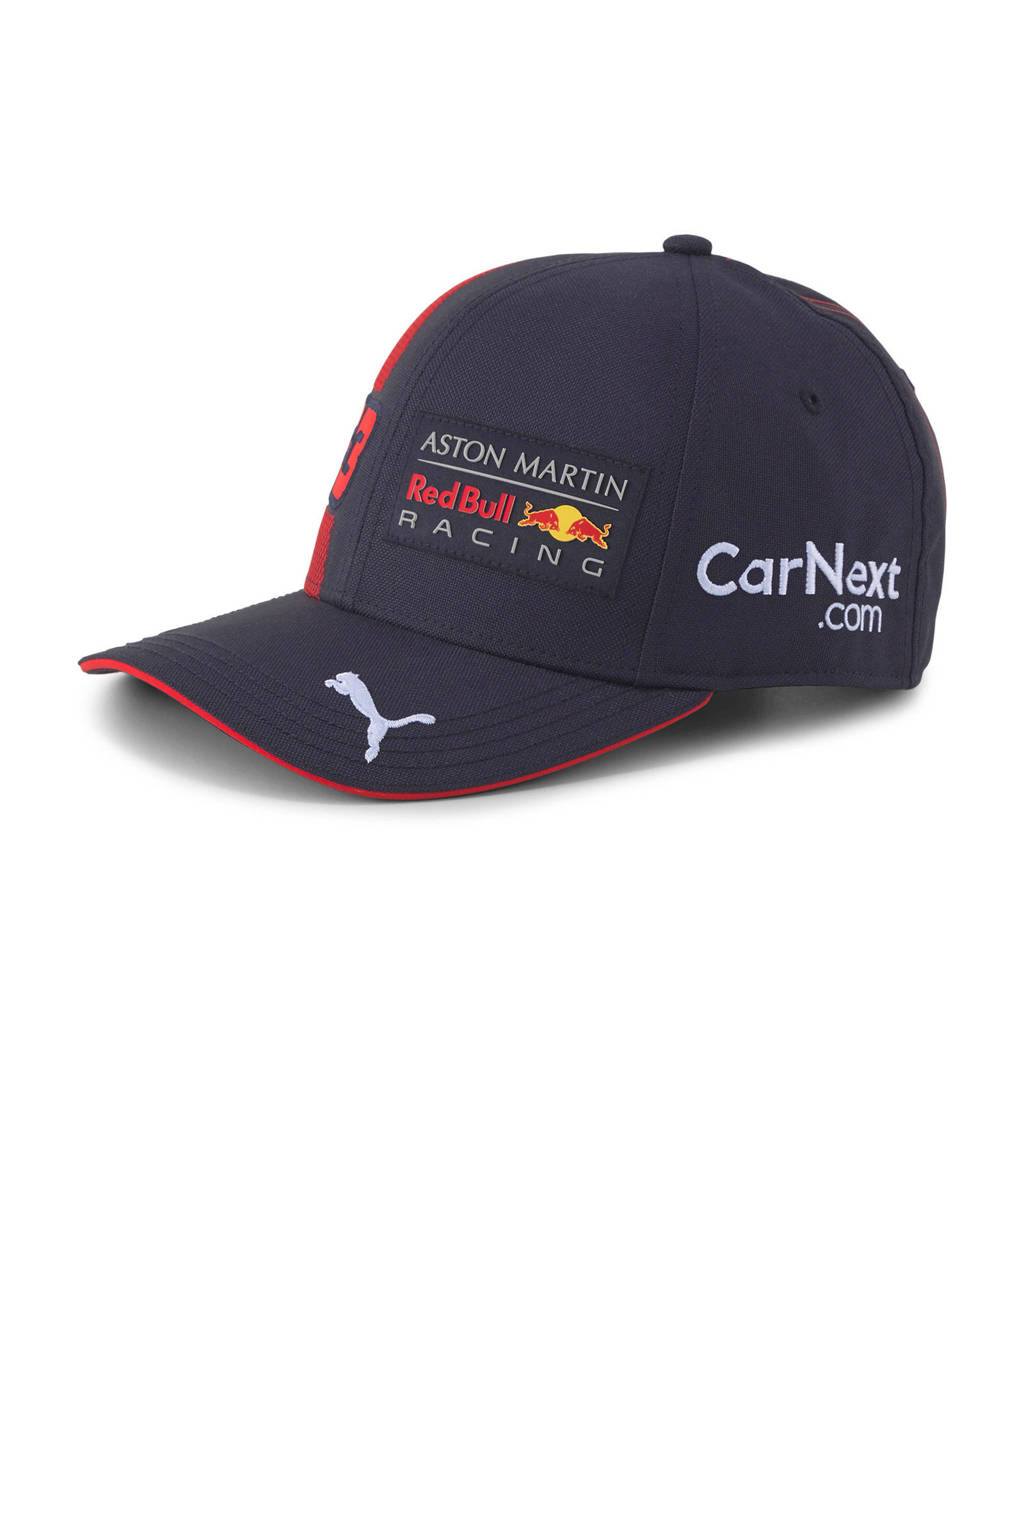 Puma Red Bull Racing Max Verstappen pet Curved Youth, Donkerblauw/rood